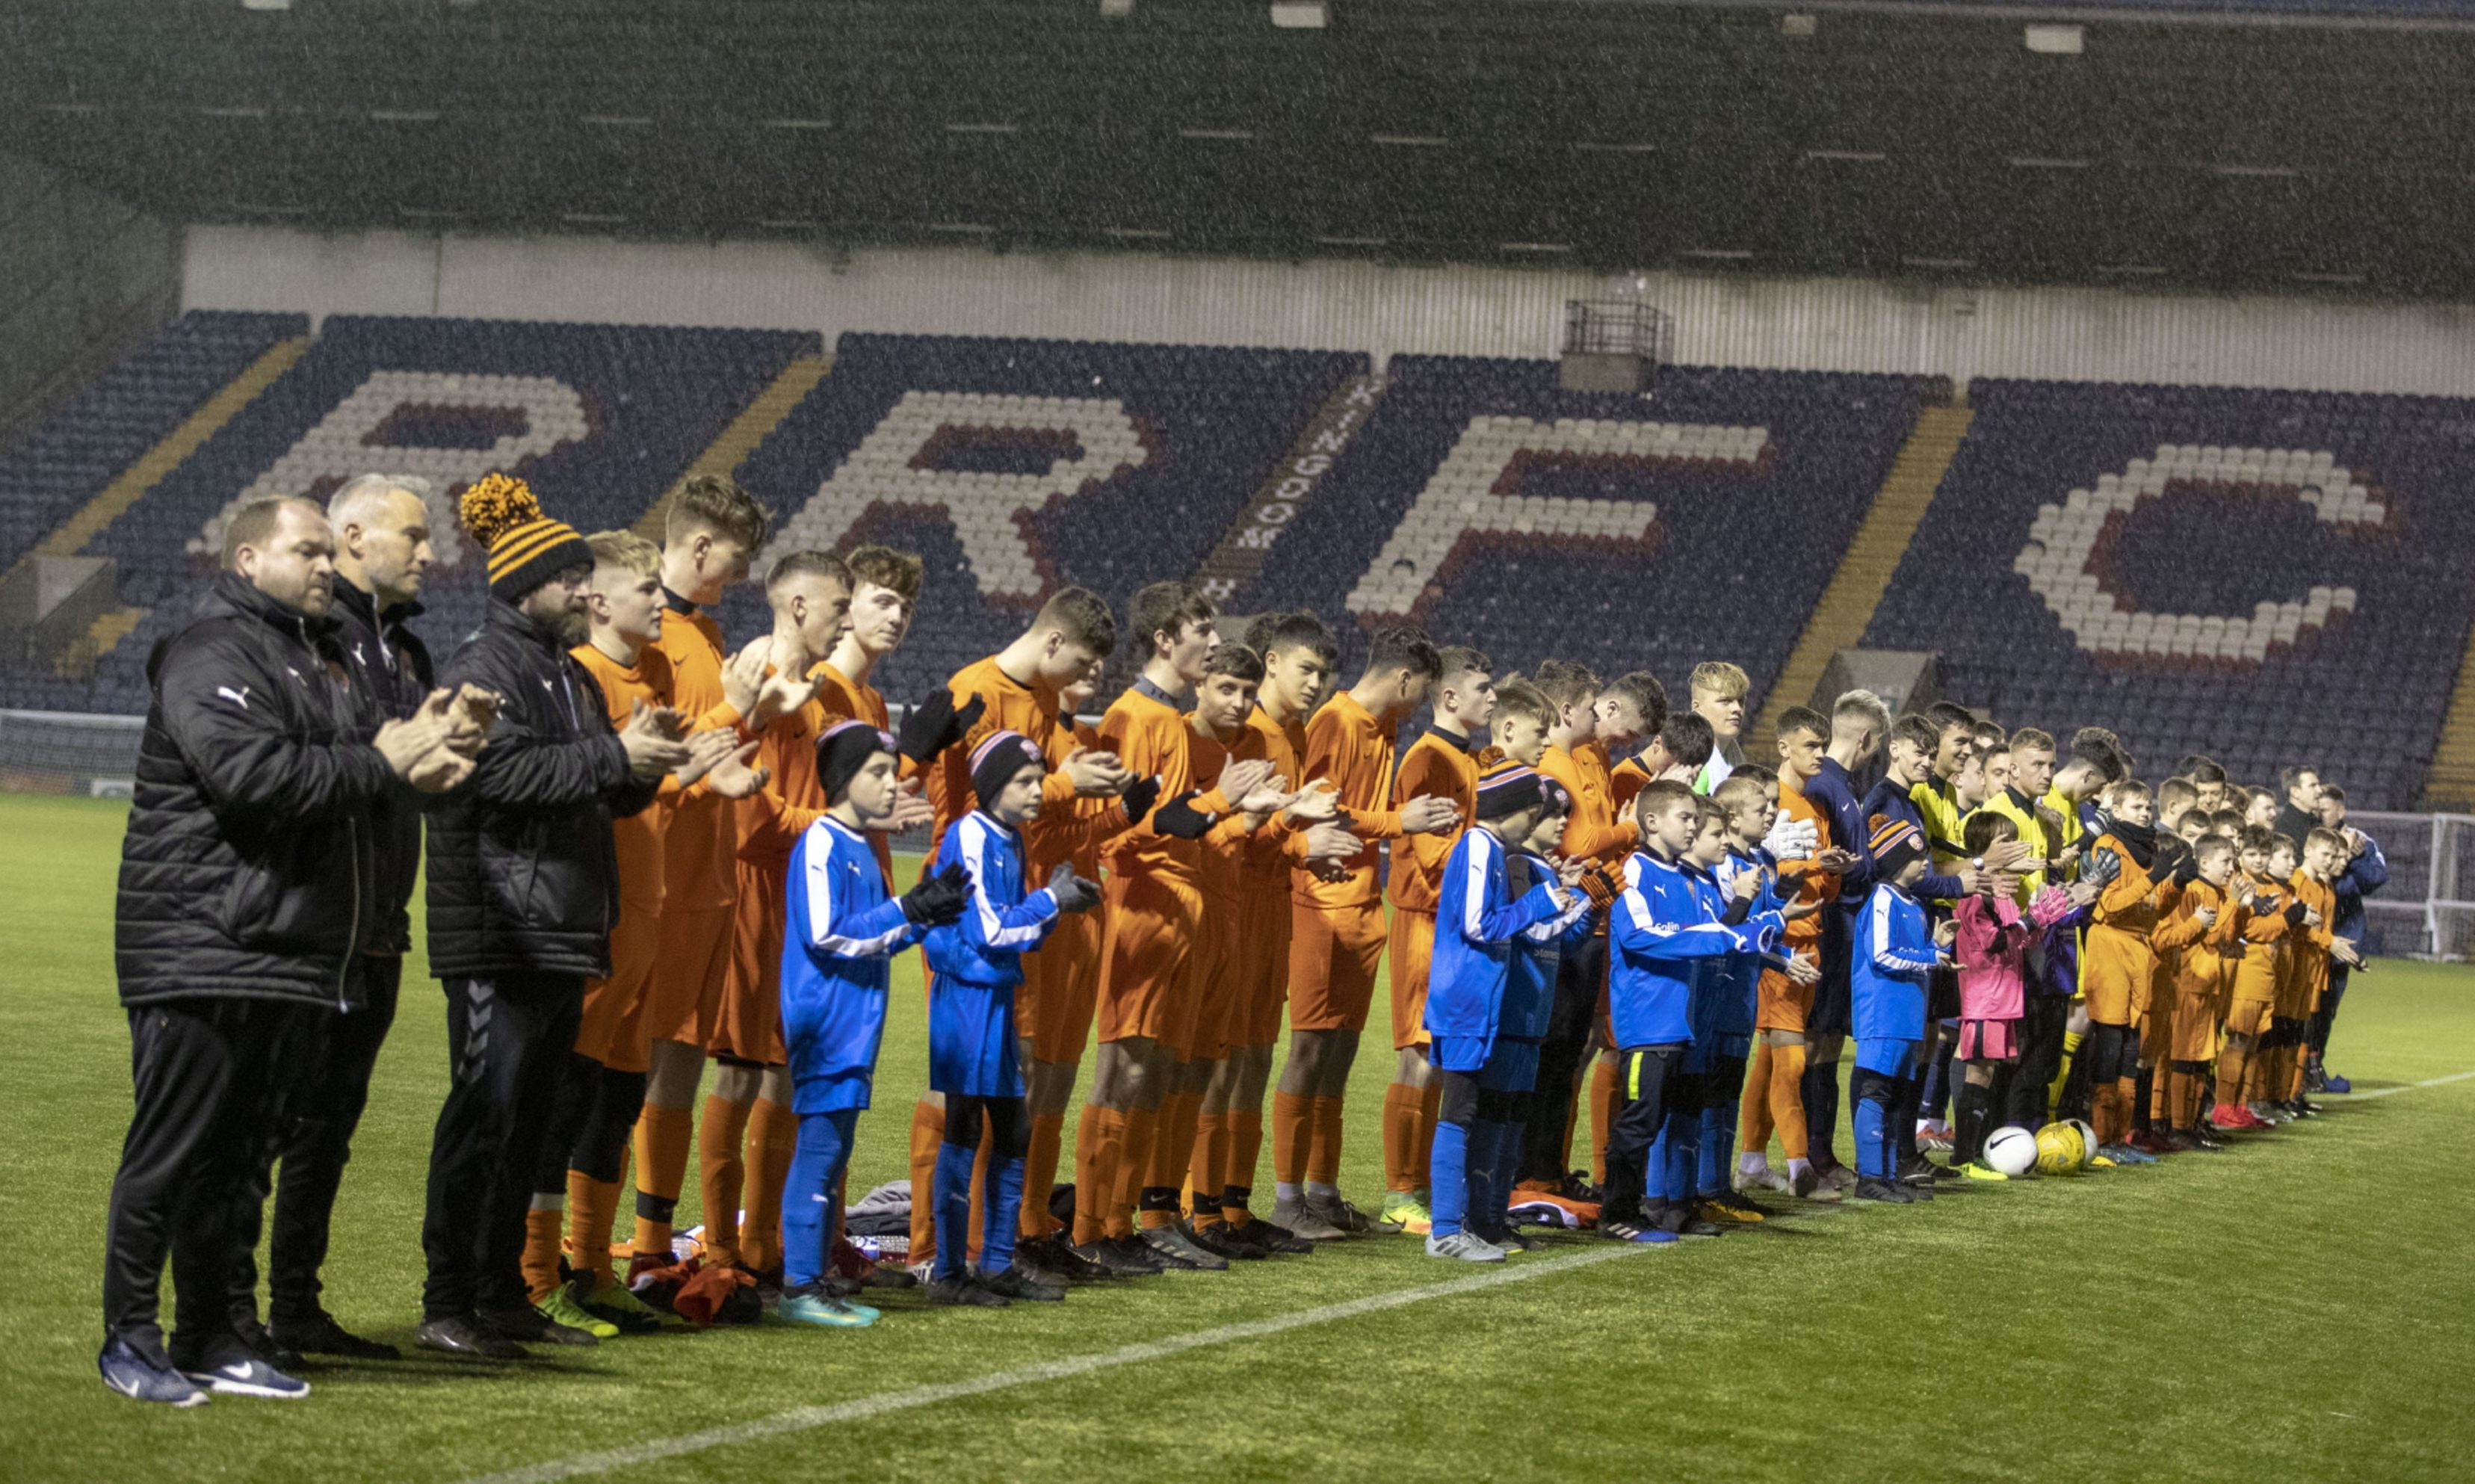 Both teams and officials join friends and family in the minute's applause ahead of the game.